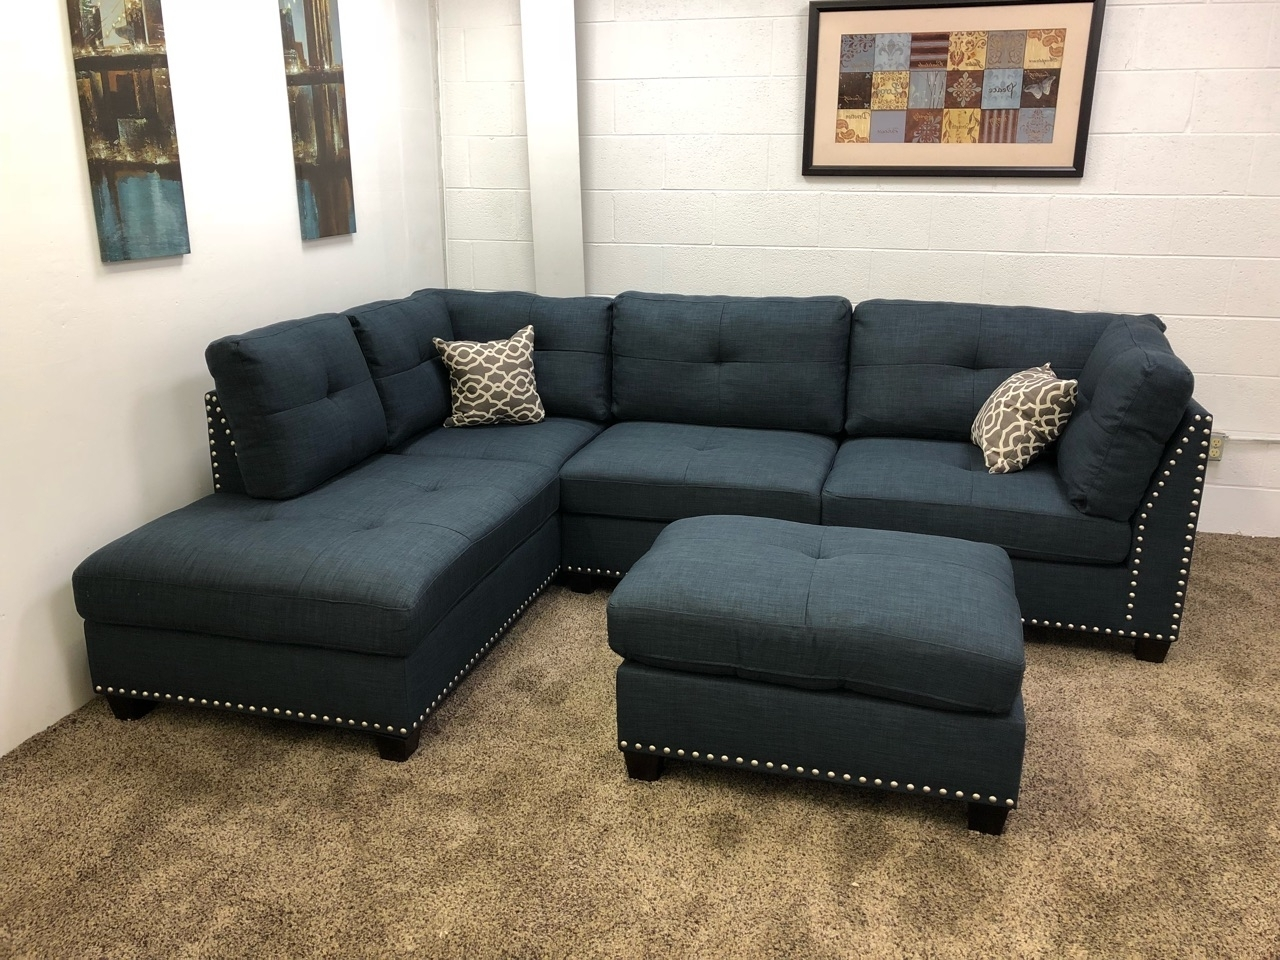 Sectional Sofas With Chaise Lounge And Ottoman Intended For Famous 0 In Stock)#n754r $250 Down Blue Studded Linen Sectional Sofa W (View 10 of 20)